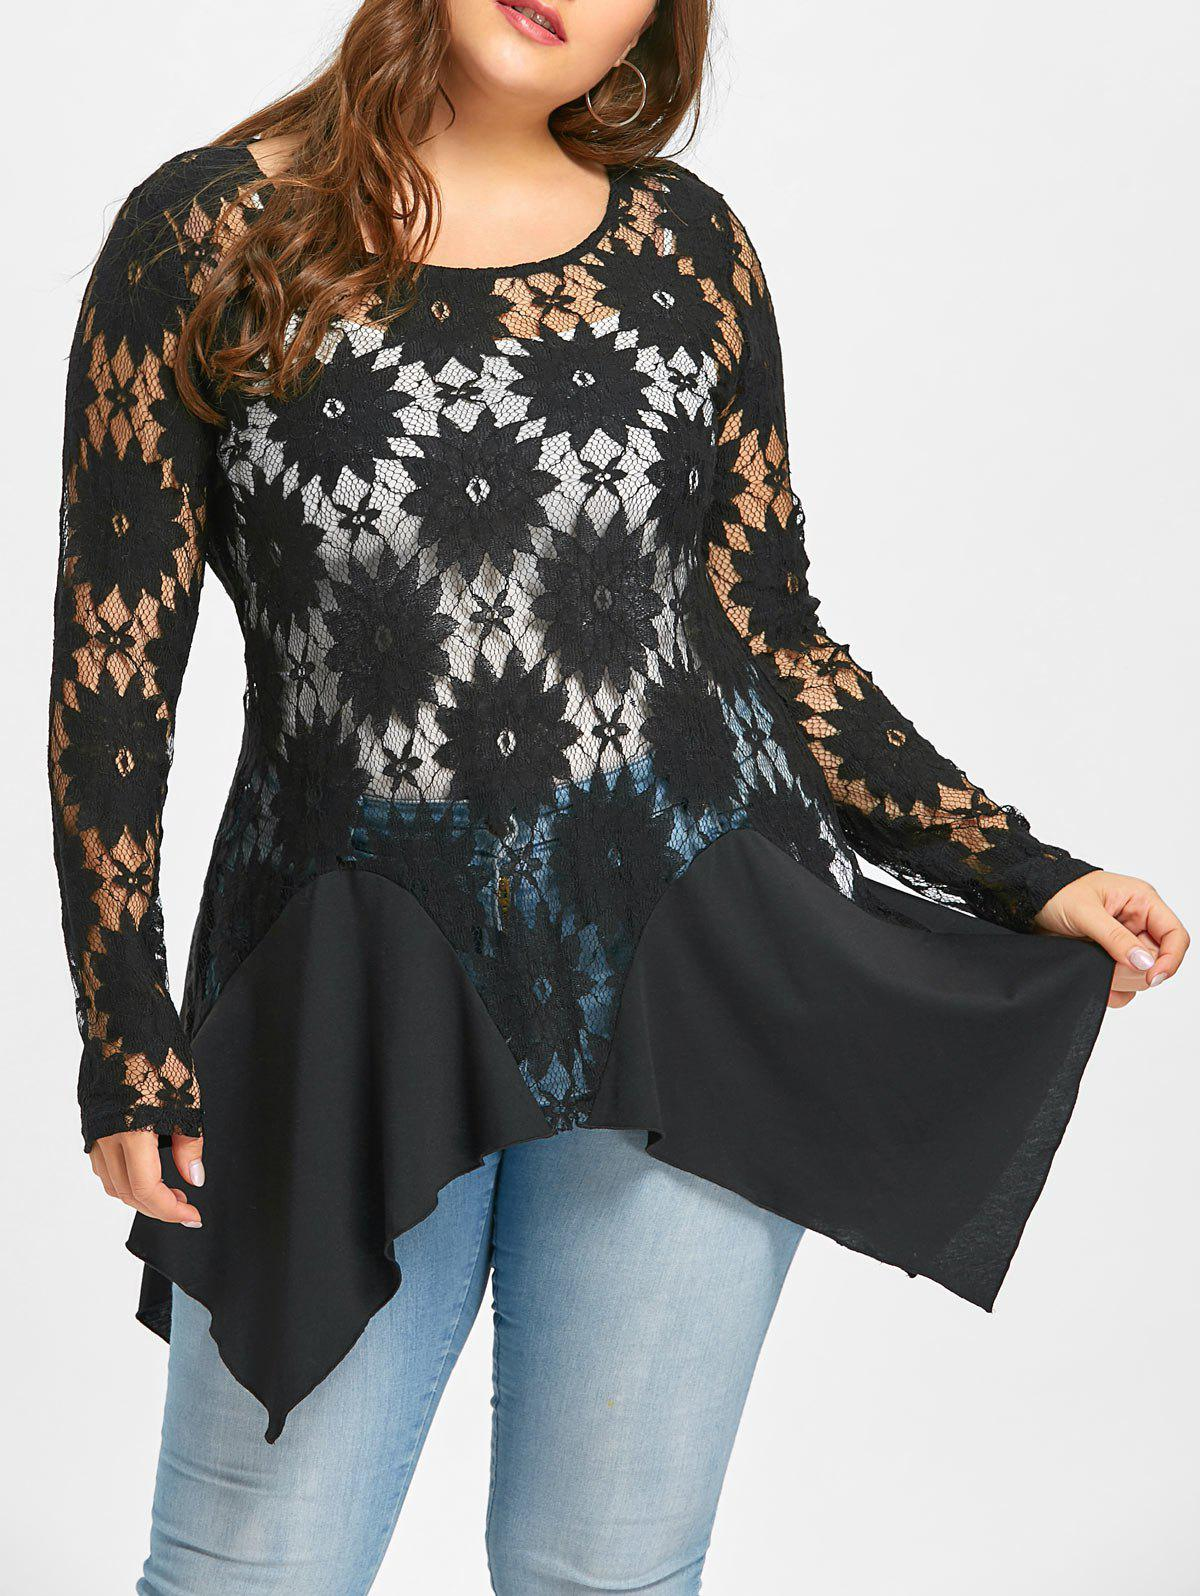 Plus Size Sheer Lace Handkerchief Blouse цепочка с подвеской oem 5 f60ss0092 m1